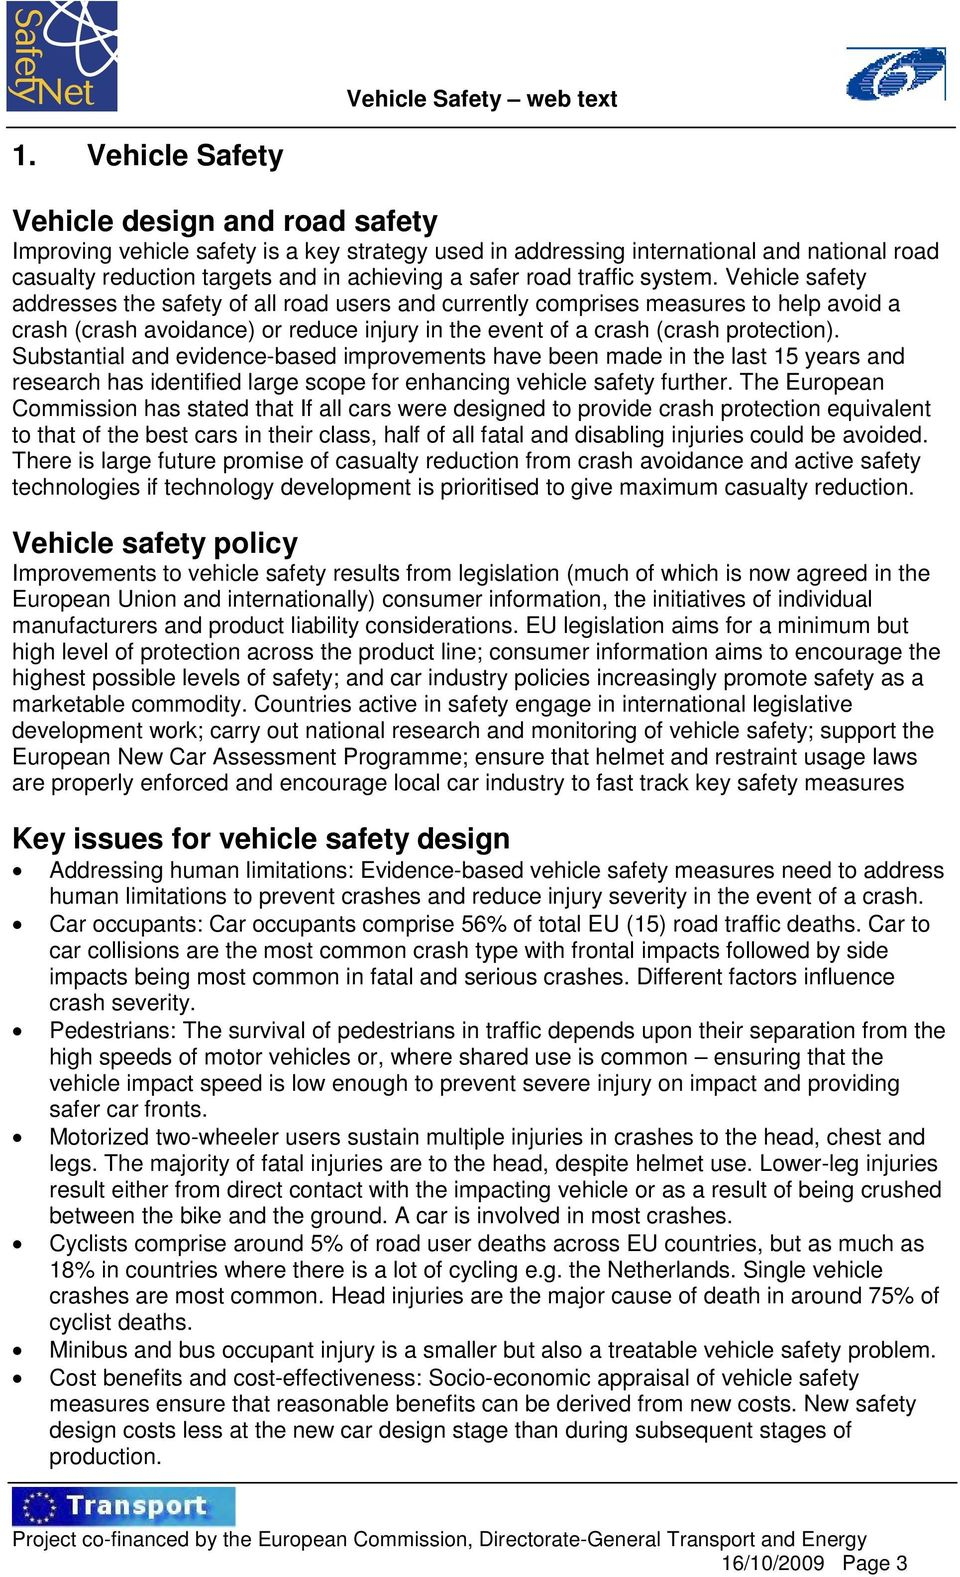 Vehicle safety addresses the safety of all road users and currently comprises measures to help avoid a crash (crash avoidance) or reduce injury in the event of a crash (crash protection).